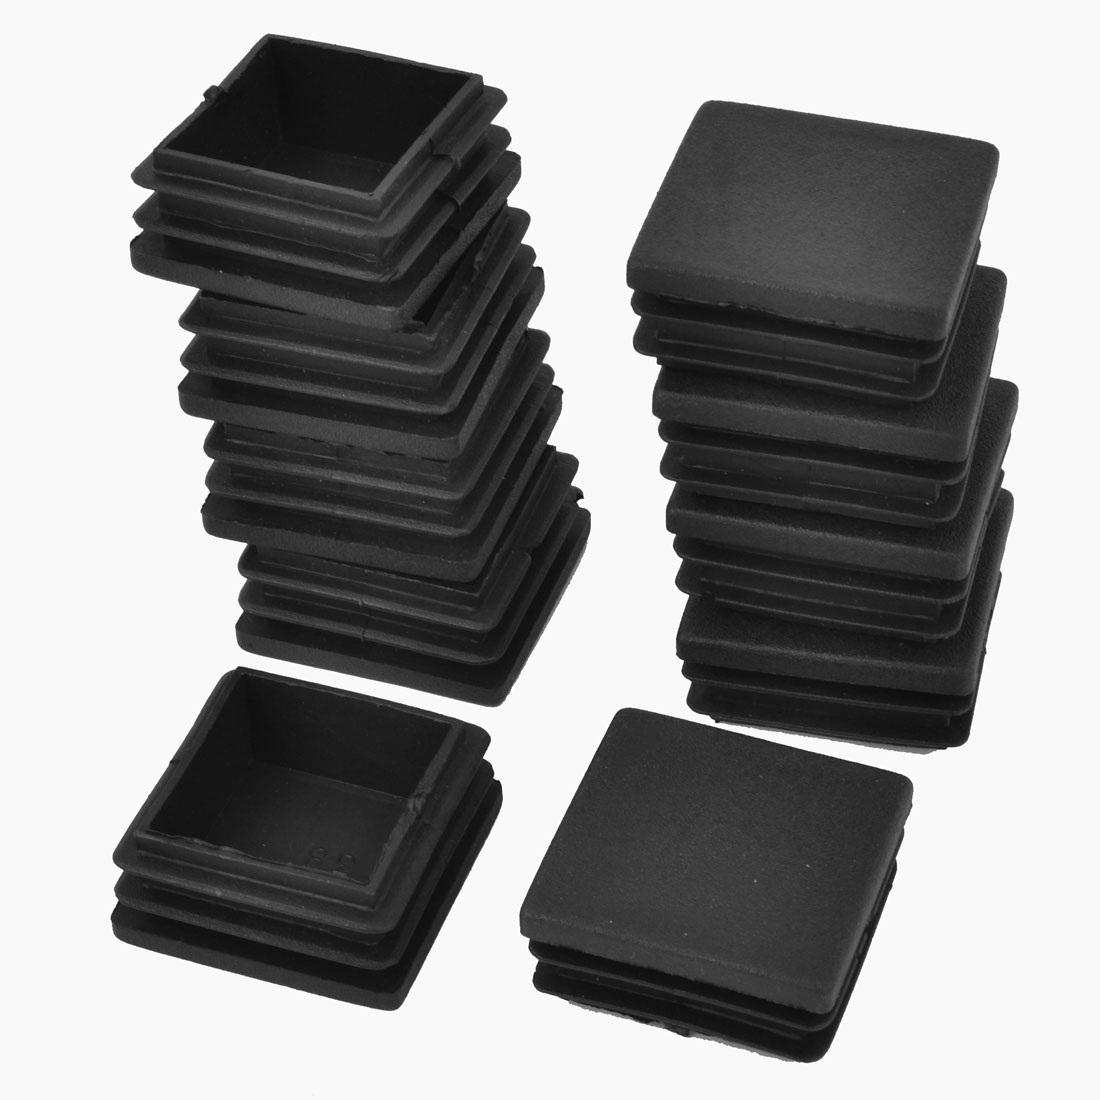 38mm x 38mm Plastic Square Tube Inserts End Blanking Caps Black 10Pcs